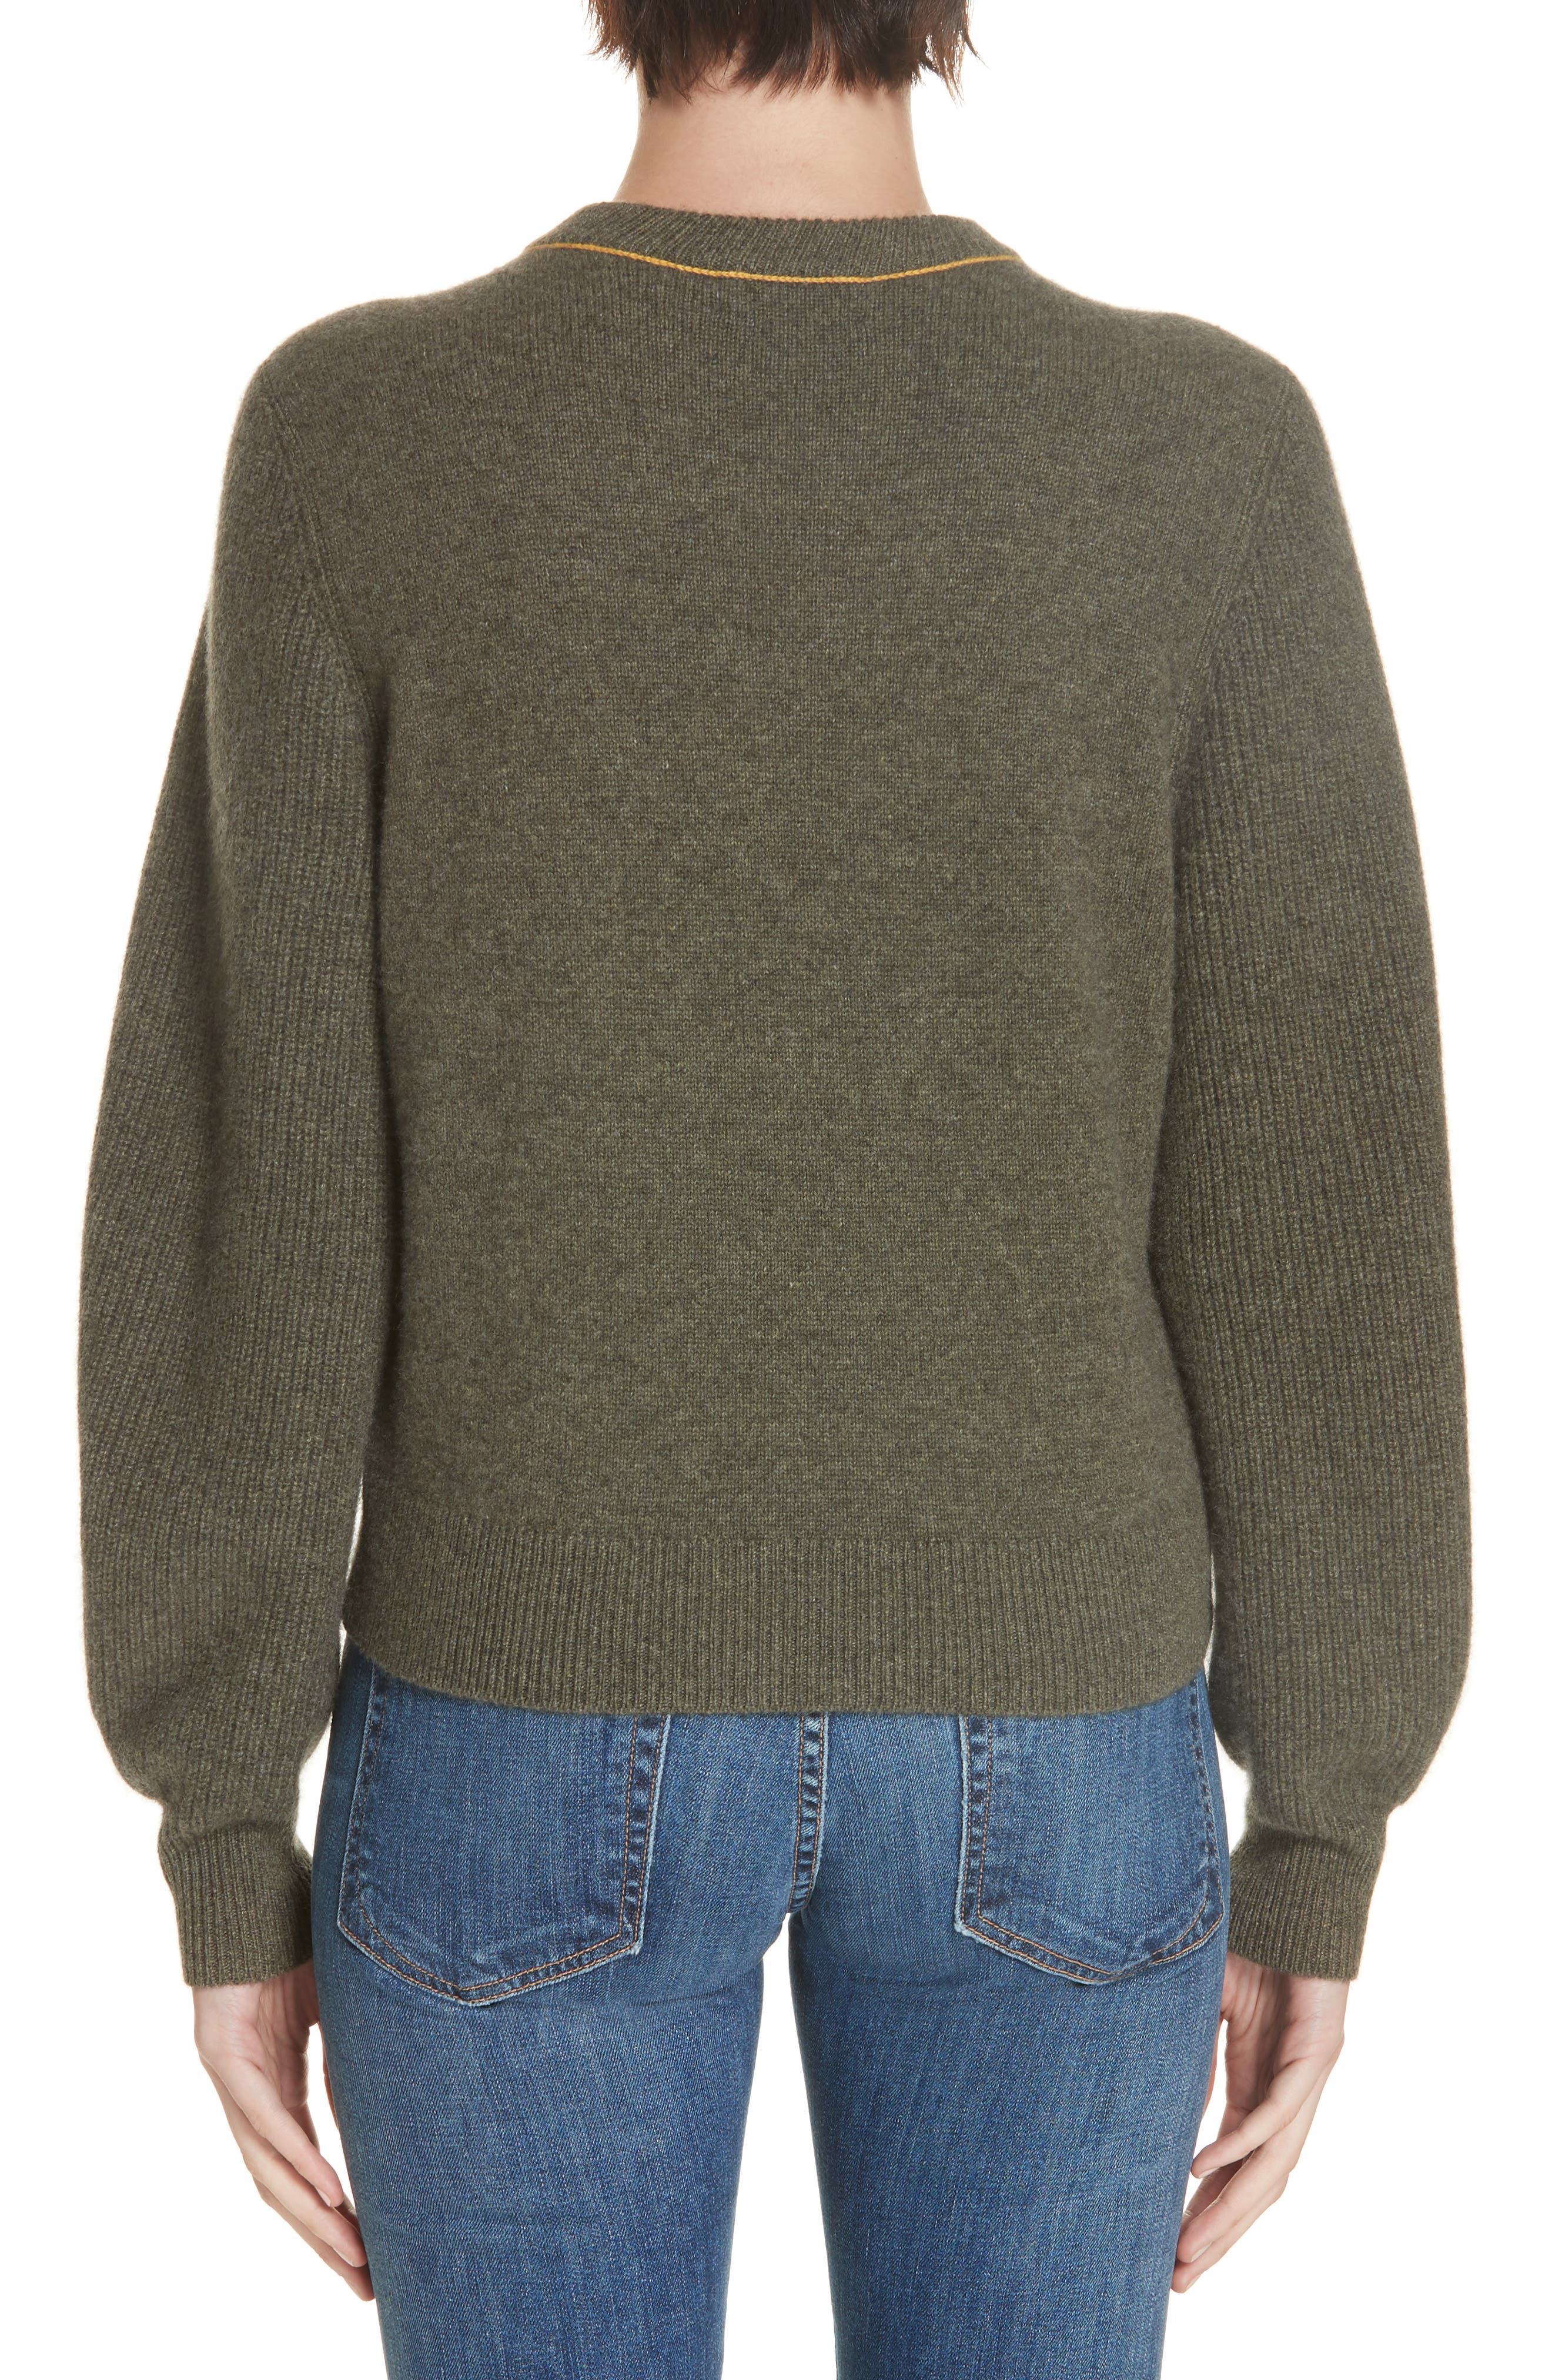 Yorke Cashmere Sweater,                             Alternate thumbnail 2, color,                             ARMY